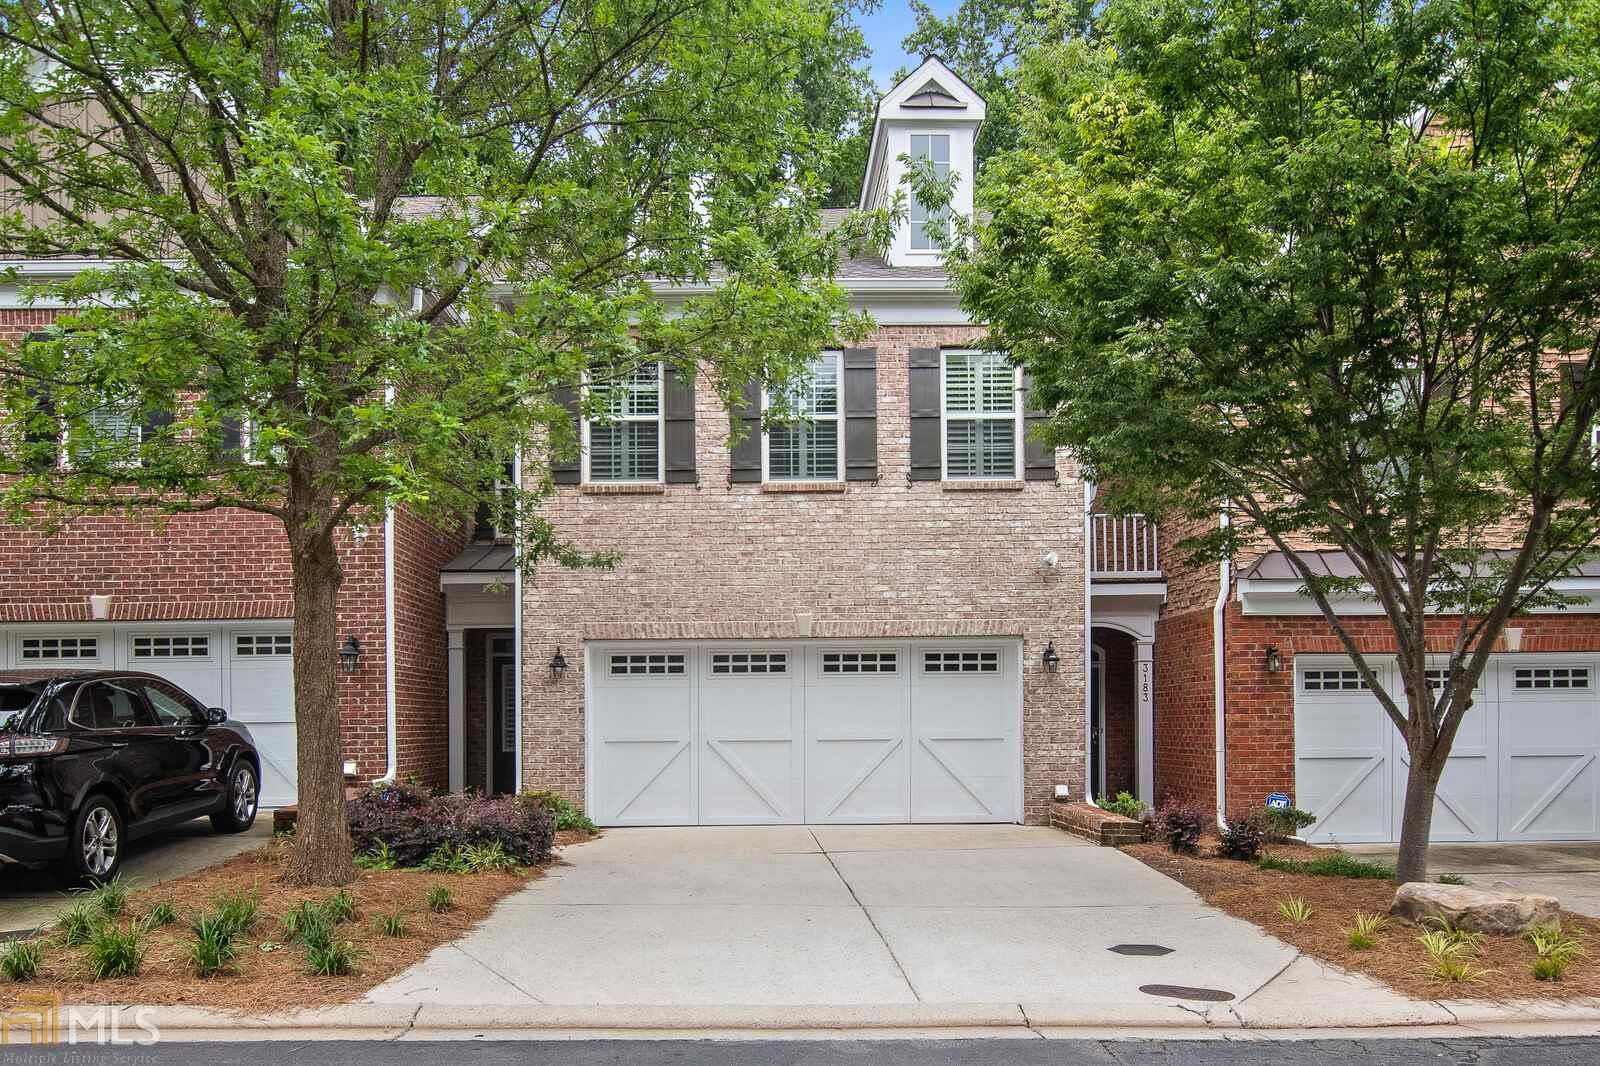 3185 Buck Way, Alpharetta, GA 30004 - #: 8812802